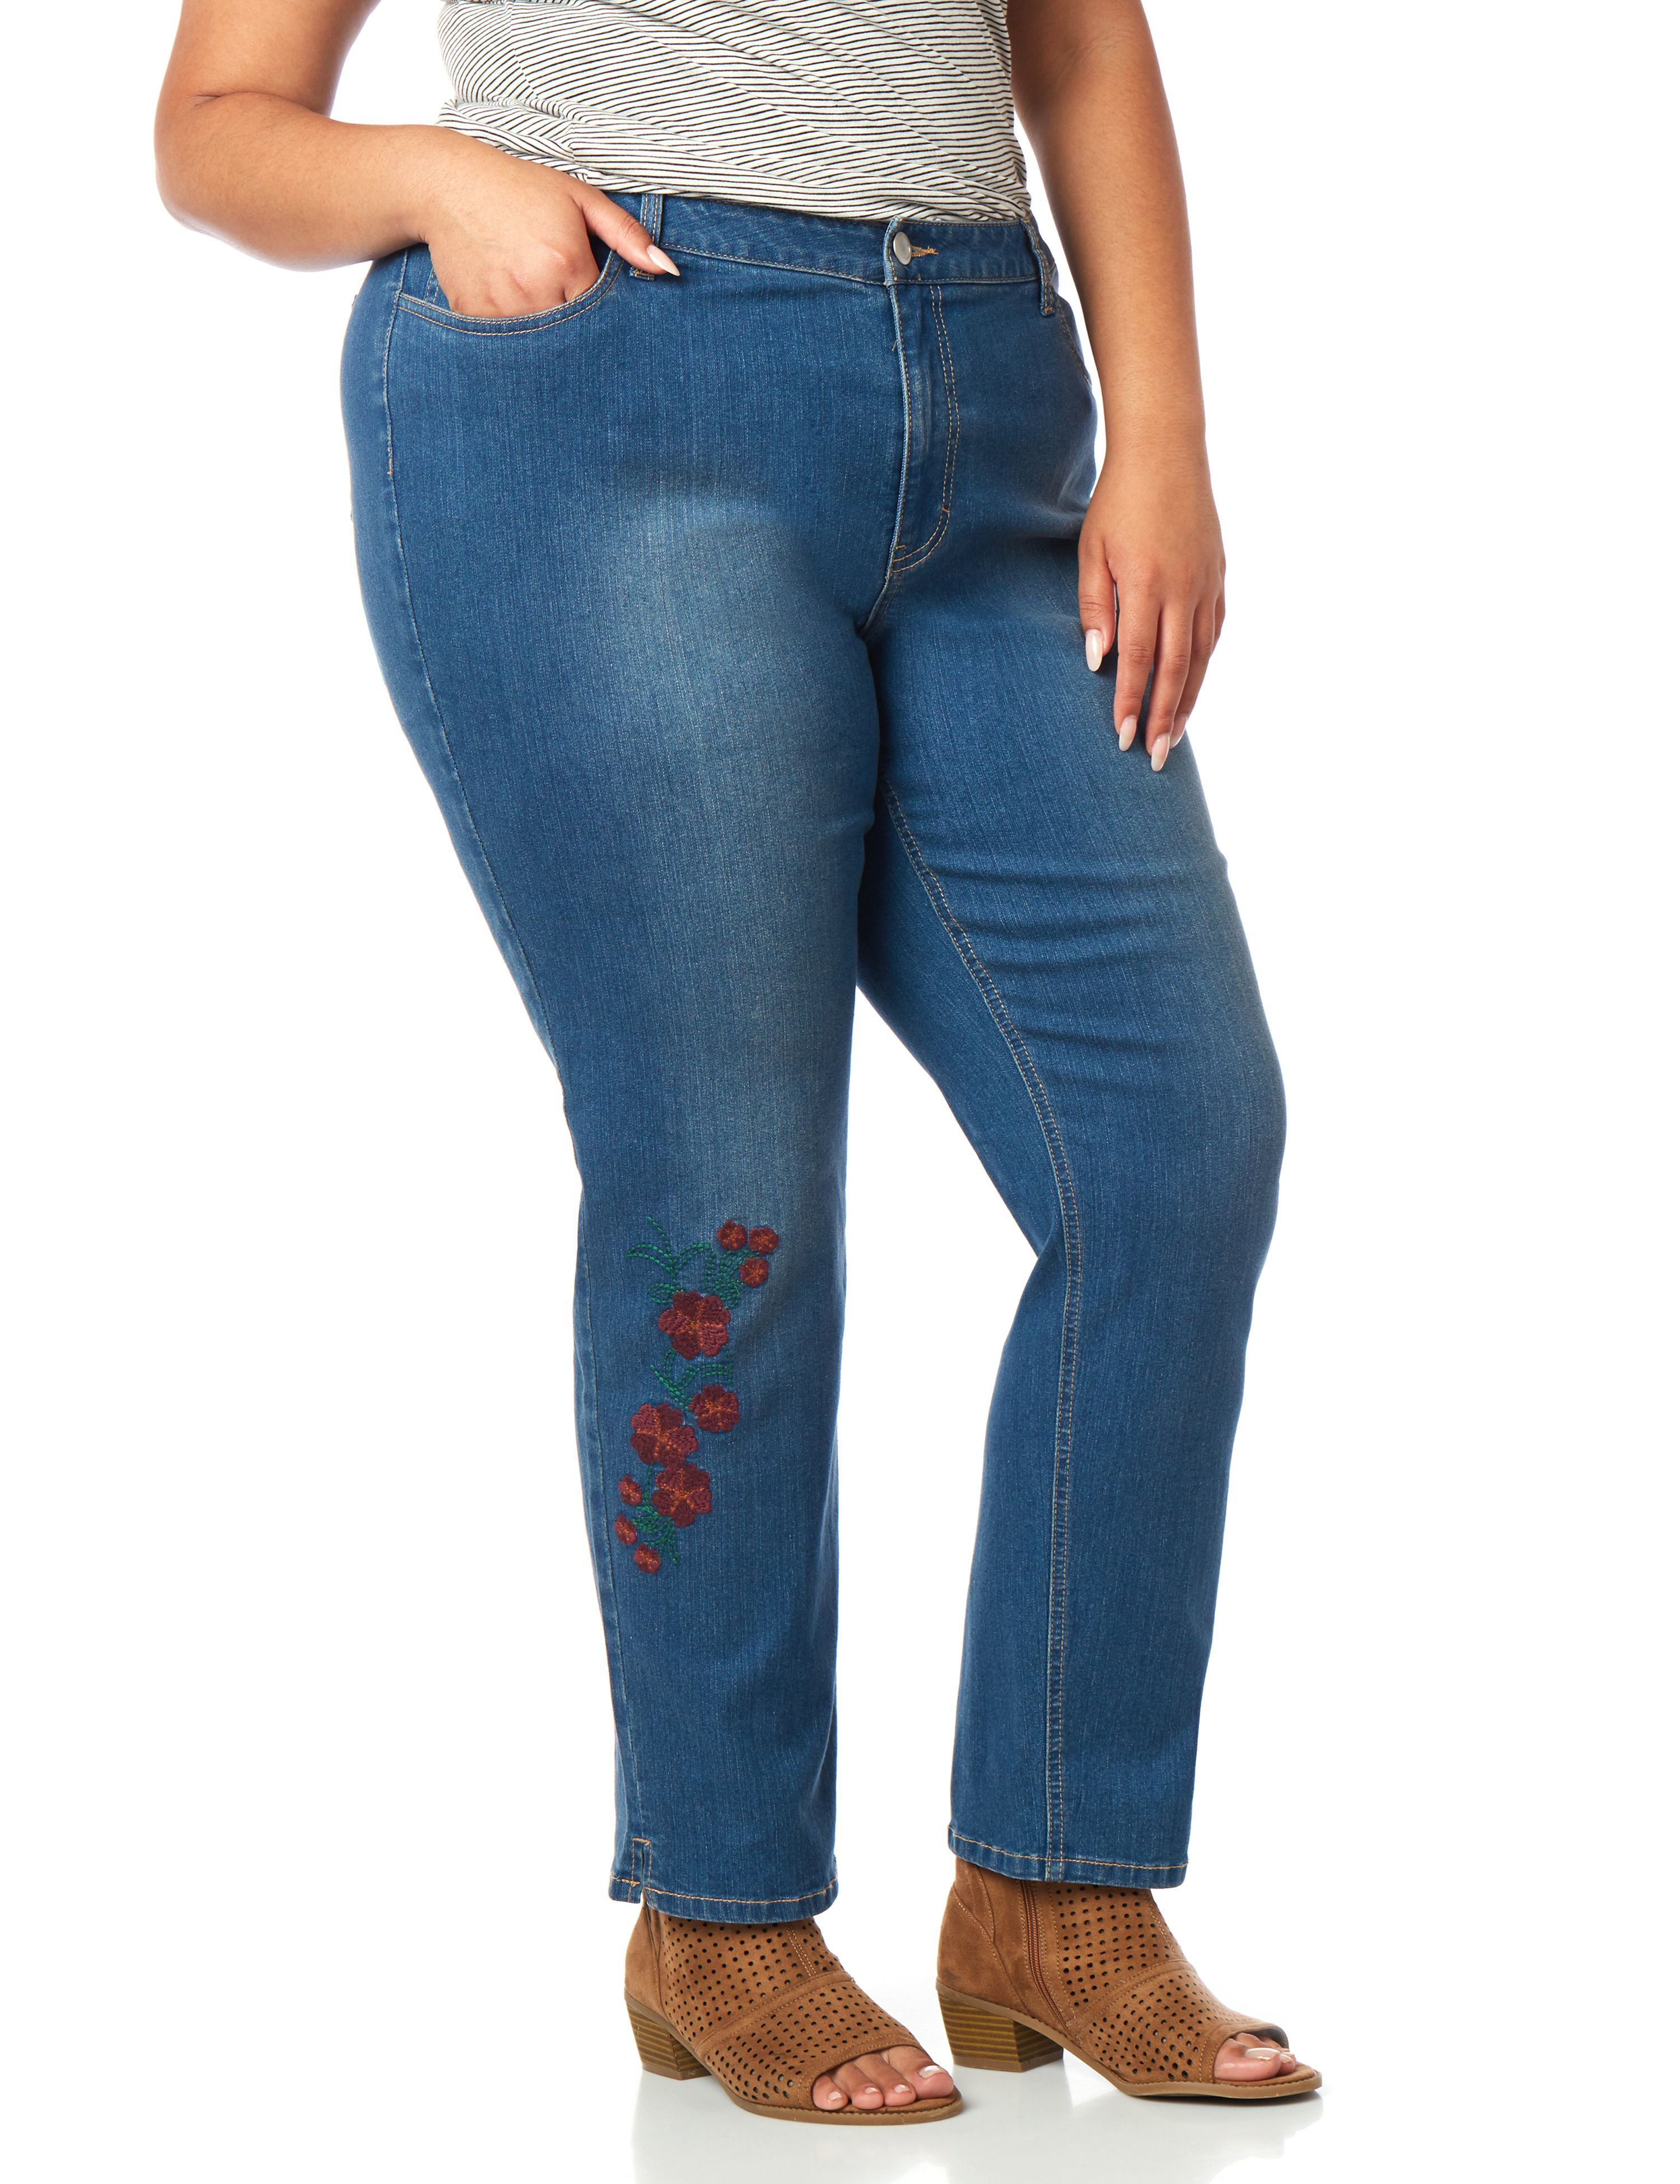 Floral Ankle Jean 1084764 Floral Embroidered Denim An MP-300084020